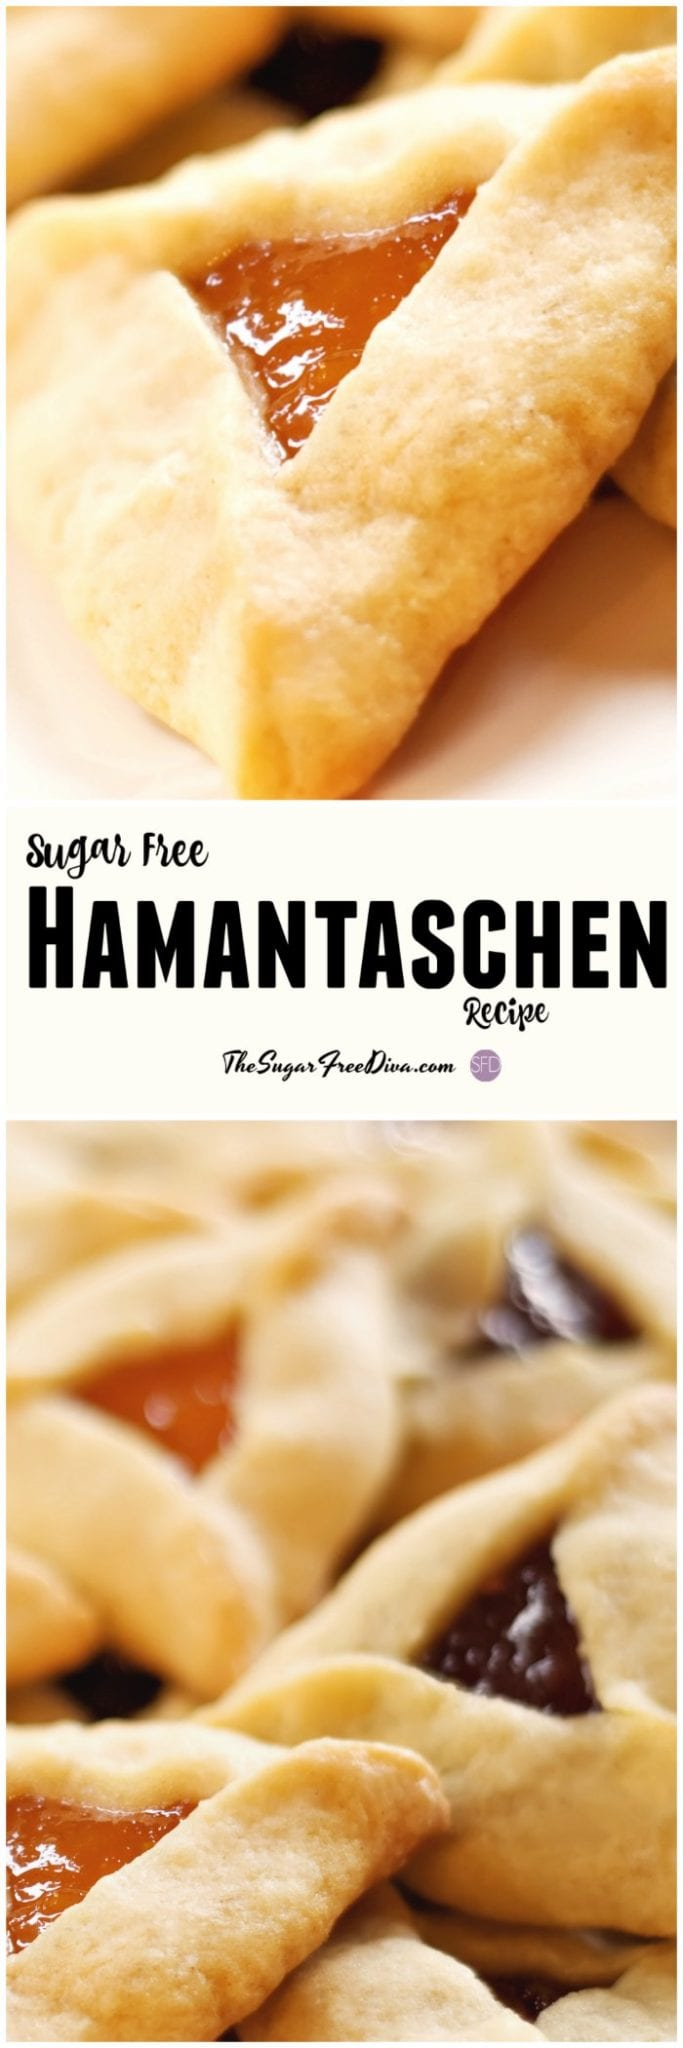 Sugar Free Hamantaschen Recipe